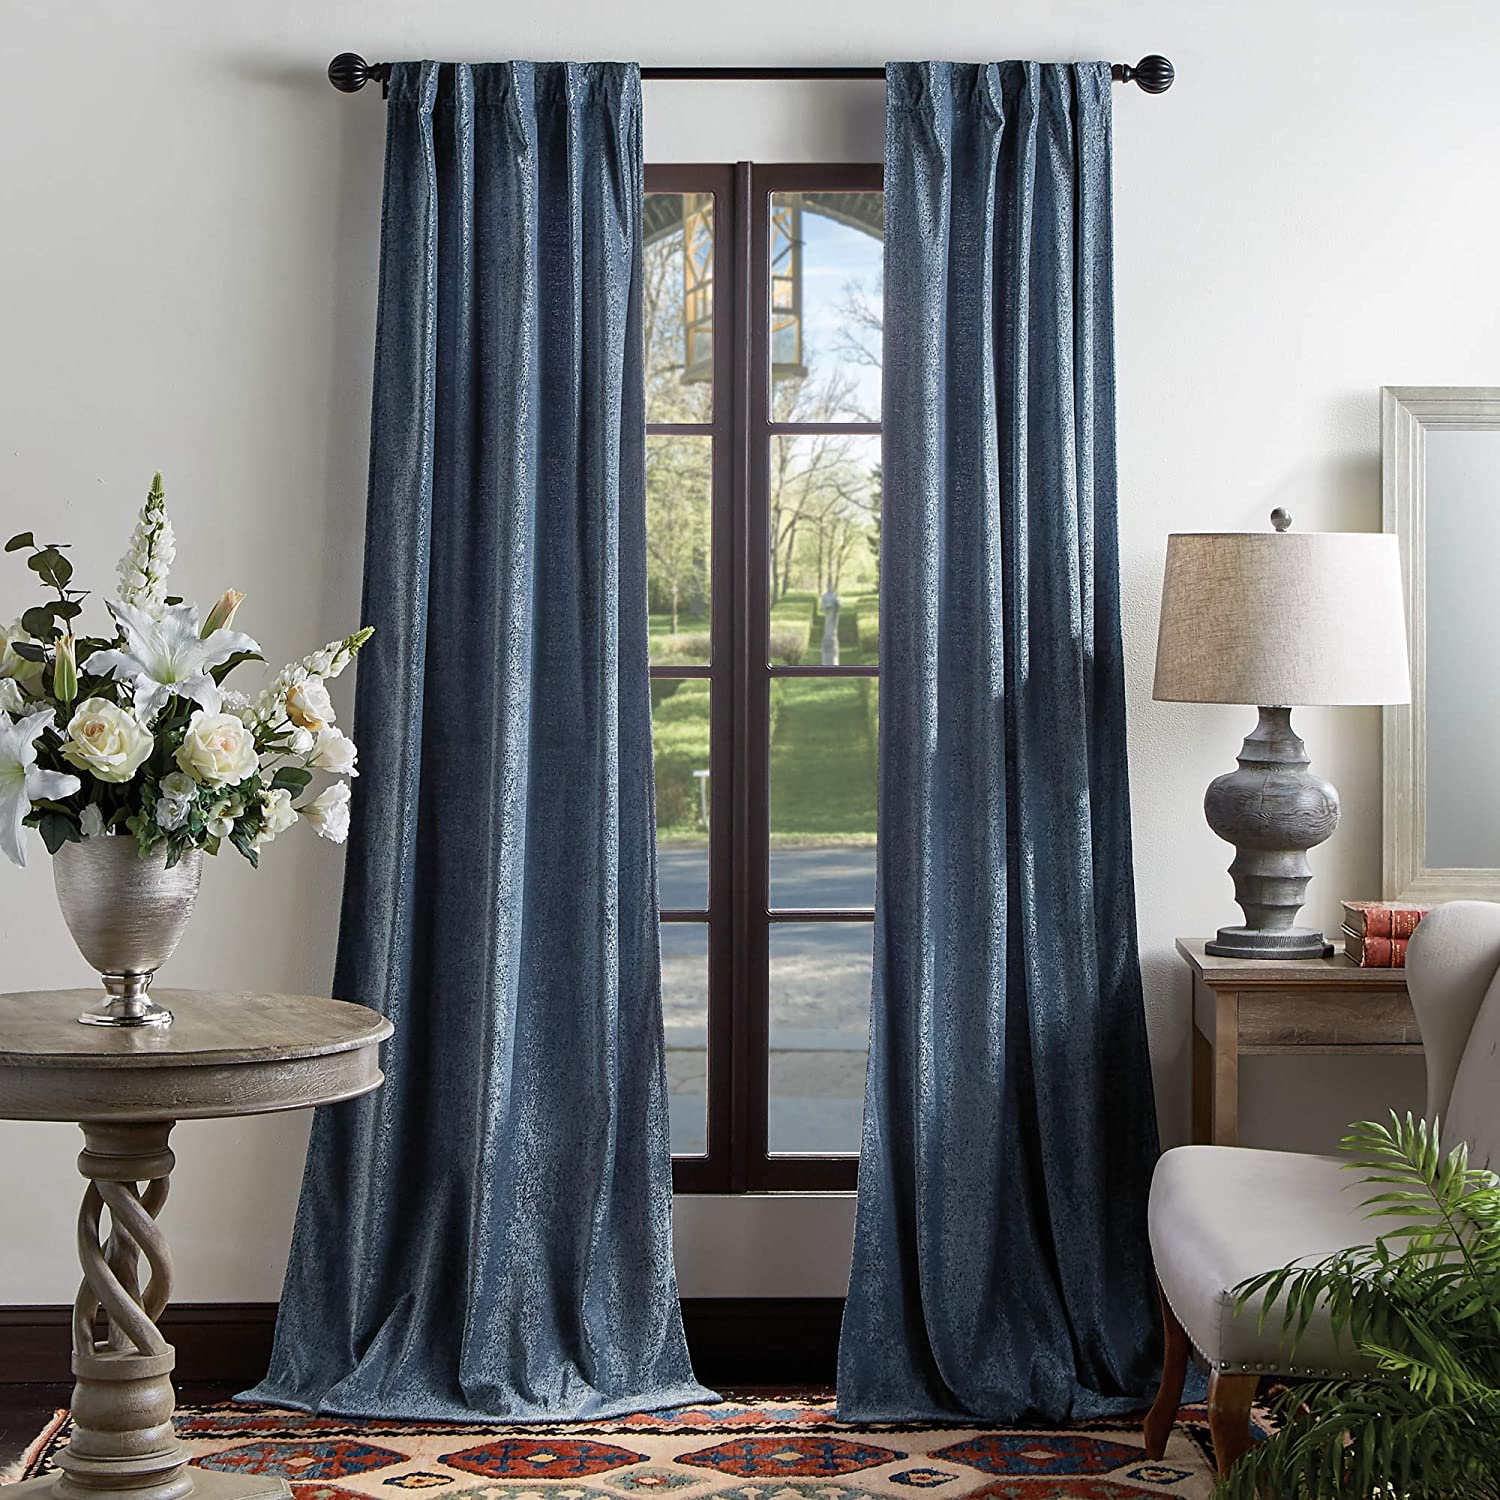 MARTHA STEWART Discount Max 84% OFF is also underway Naples Chenille Solid Tab Window Back Pan Curtain